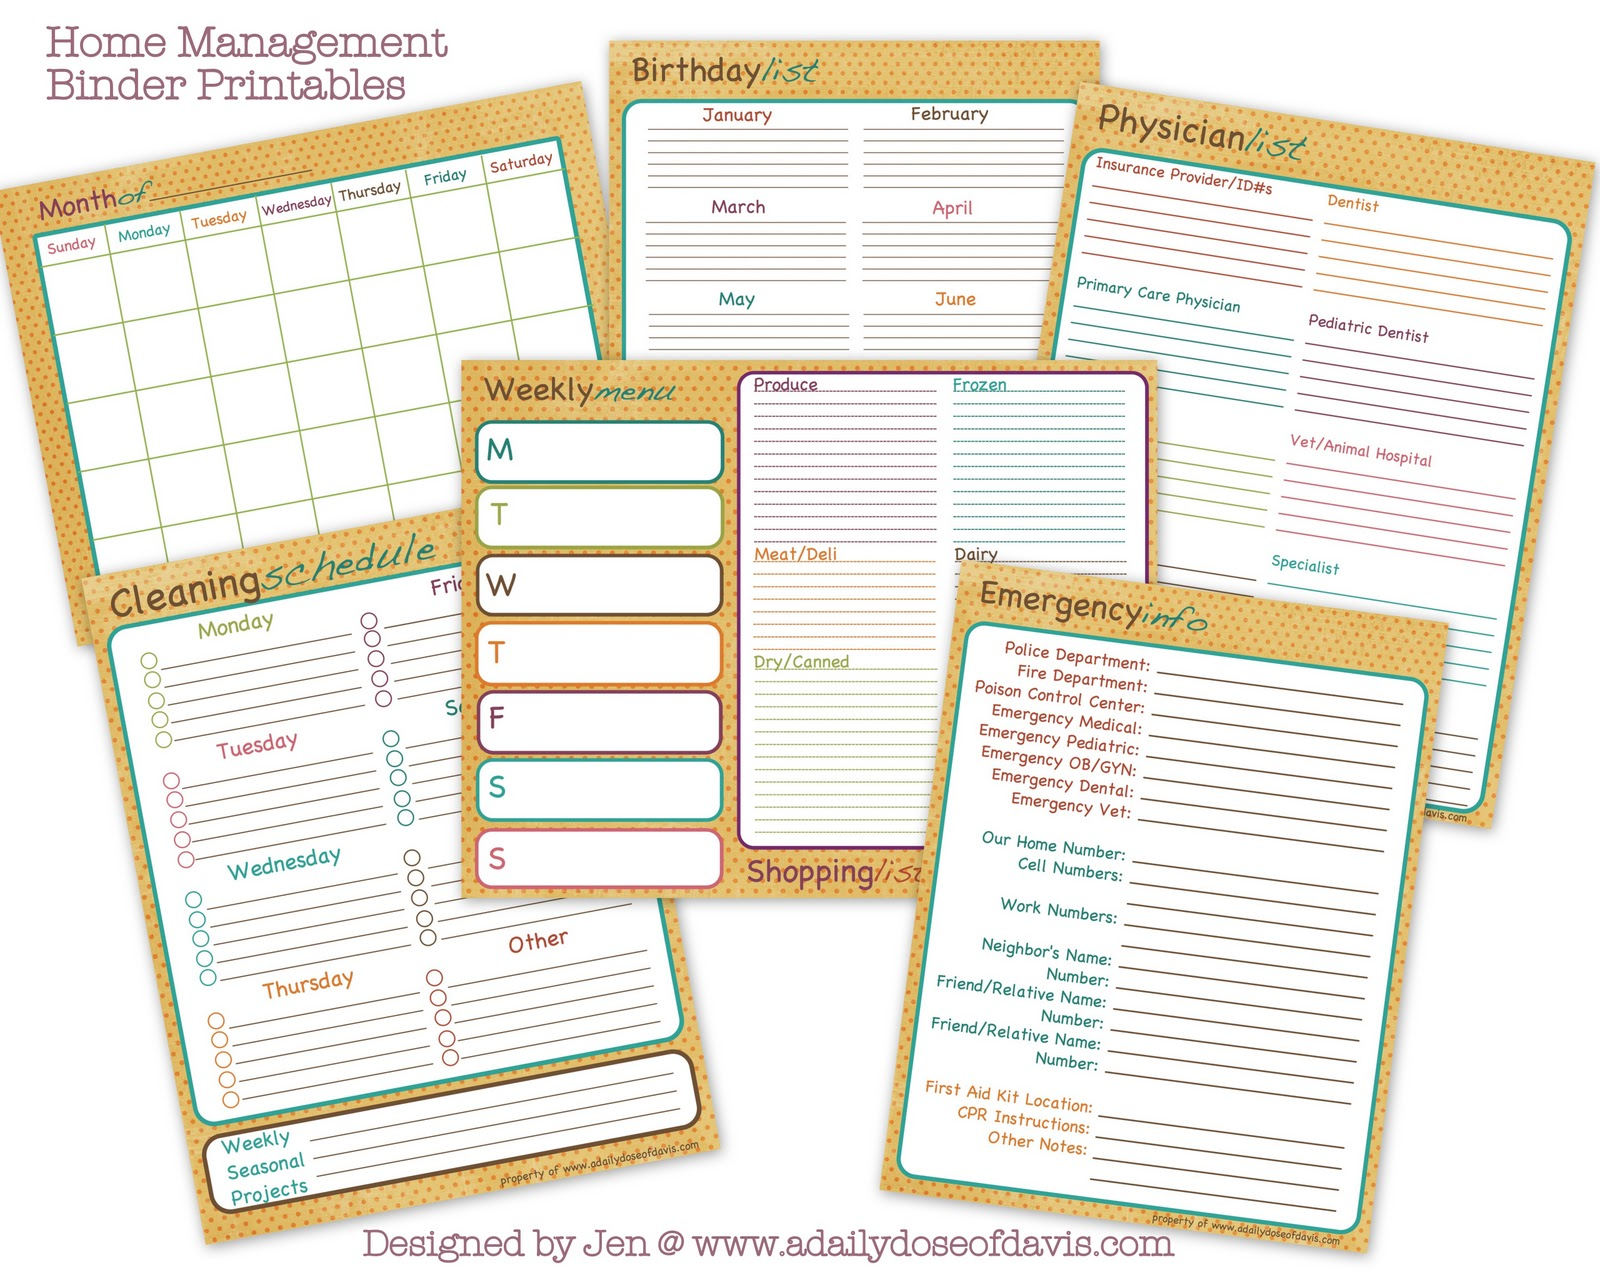 Free Printable Holiday Planner Home Management Binder Organizing